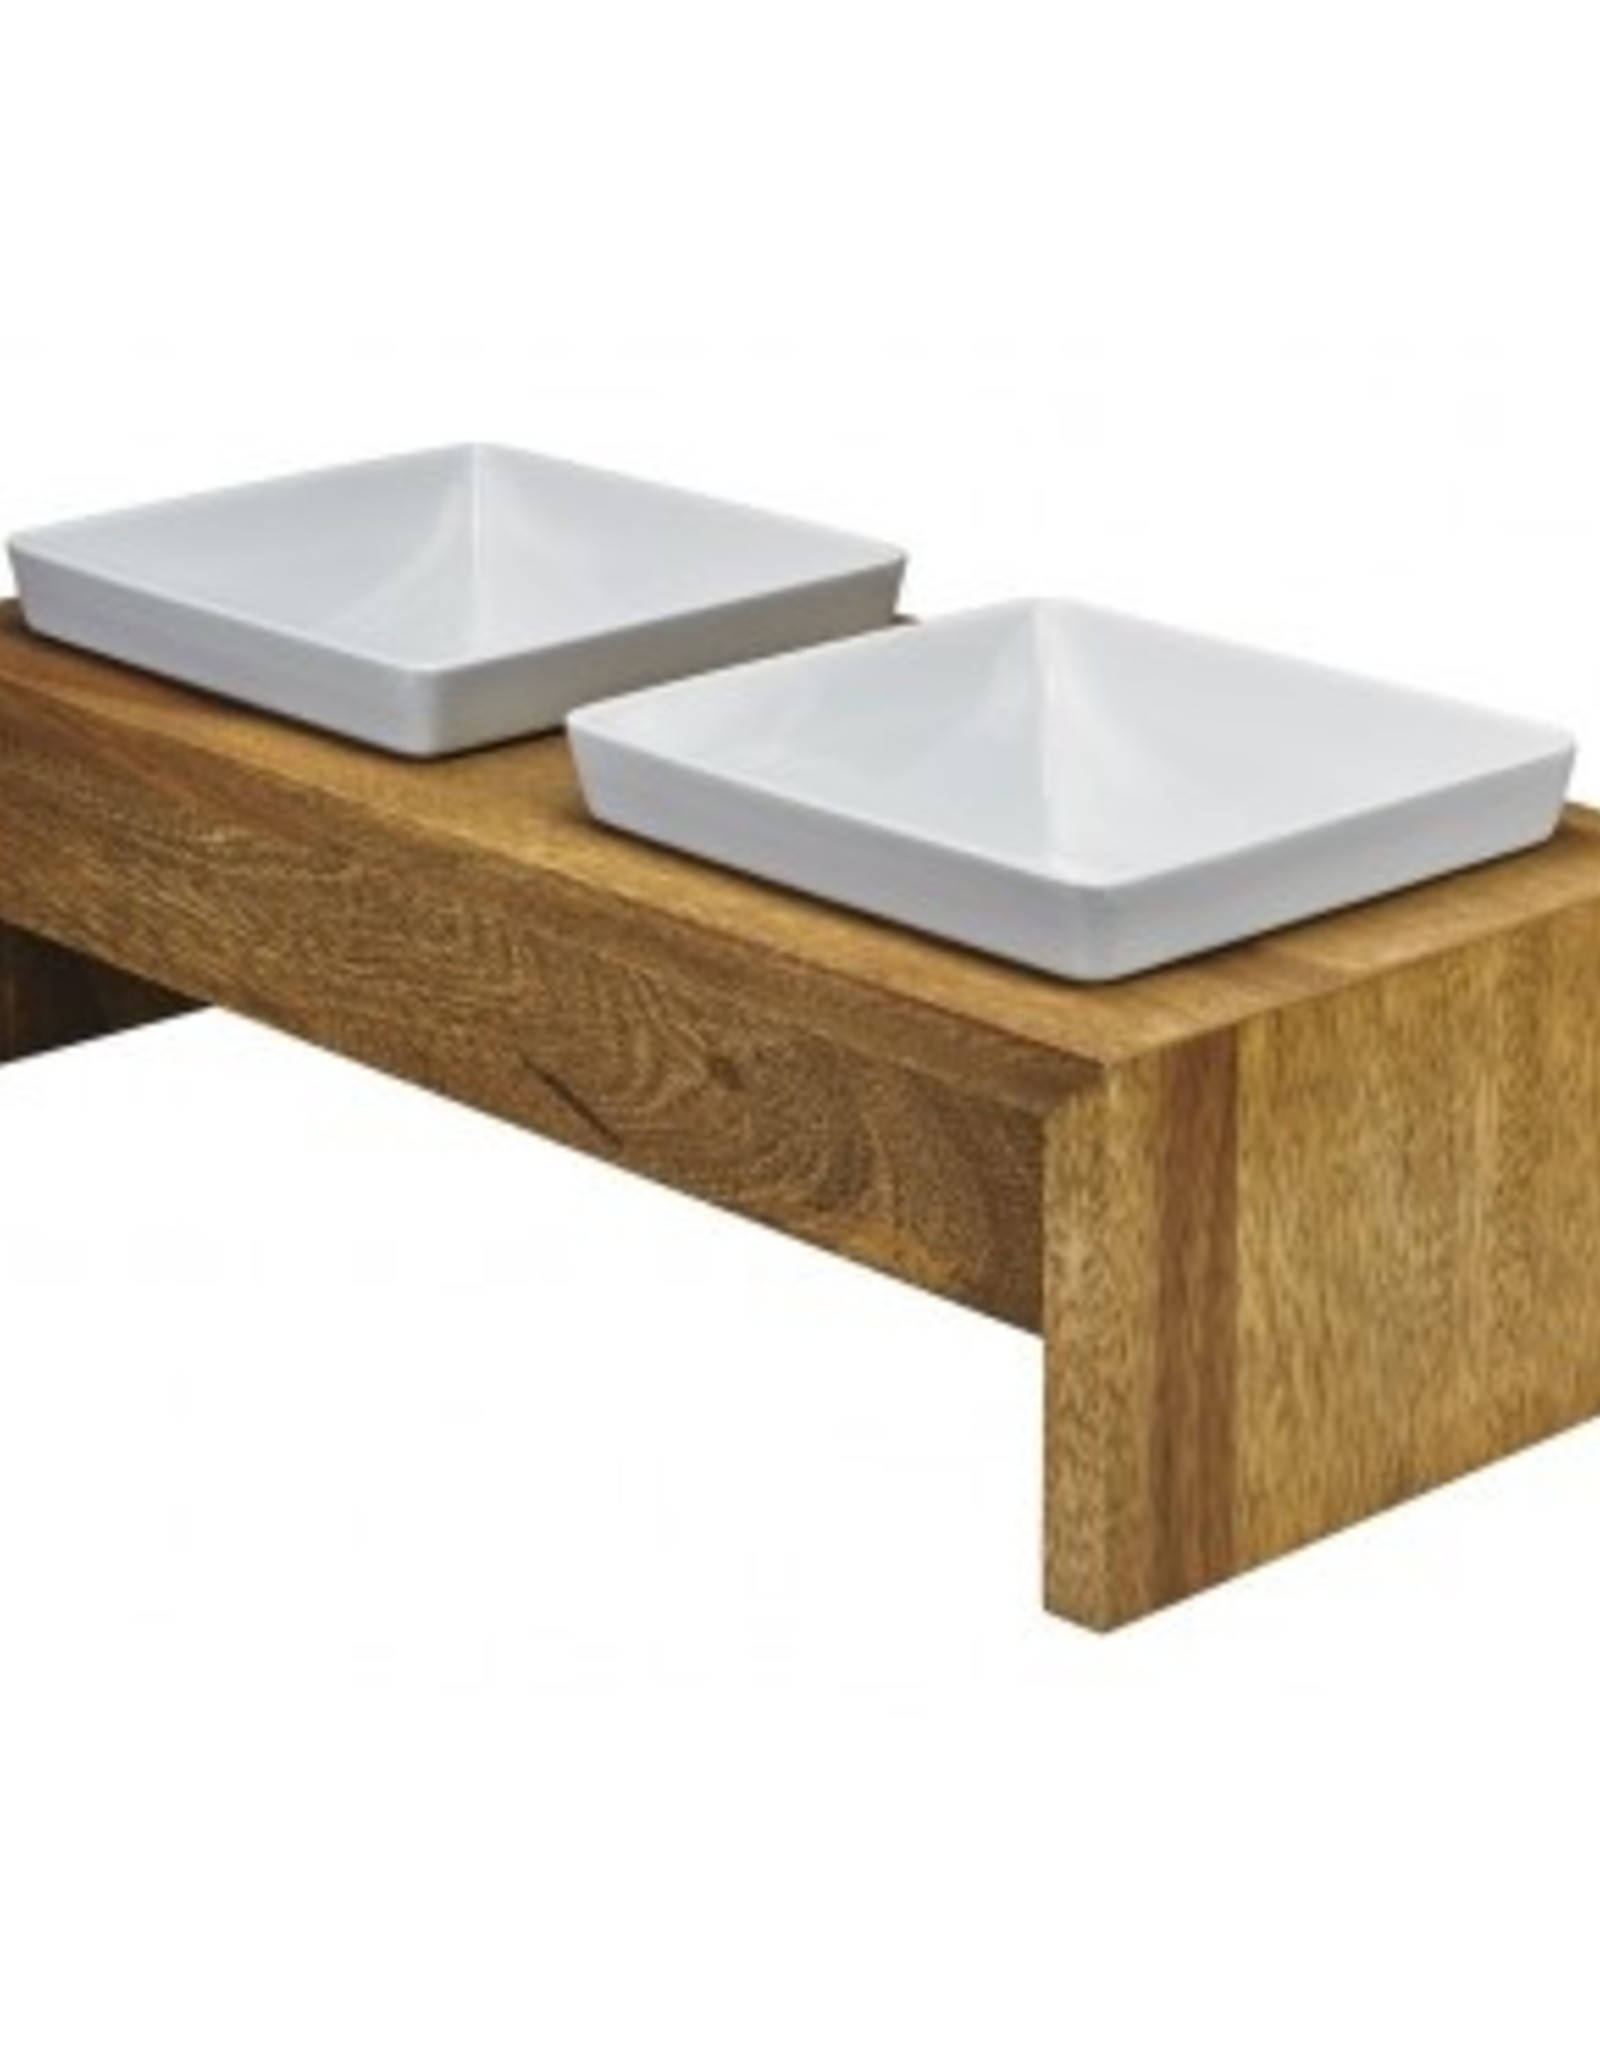 Bowsers Bowsers Artisan Double Bamboo Feeder (Medium)